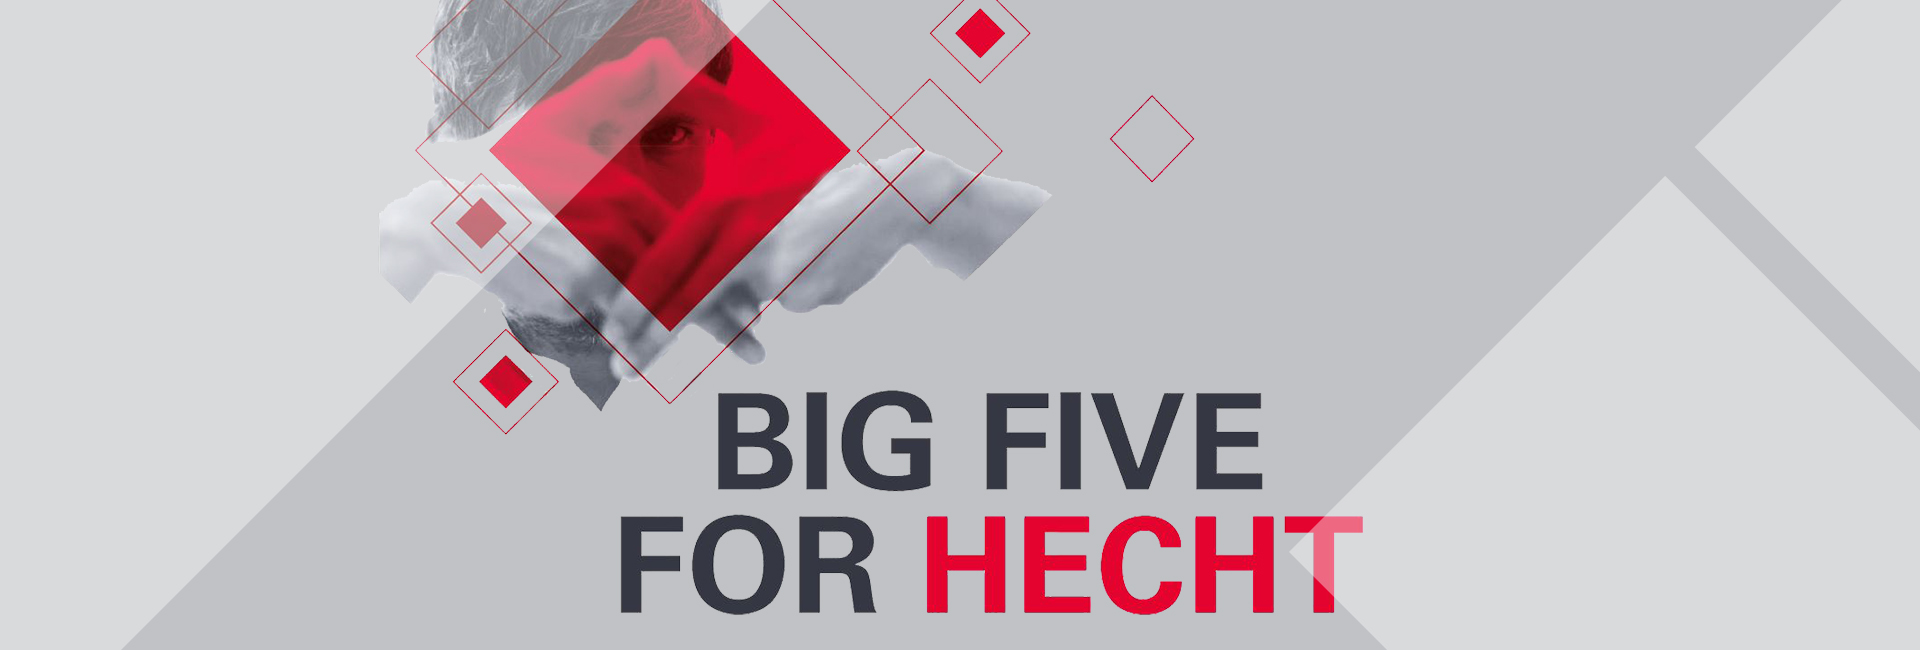 Big 5 for Hecht